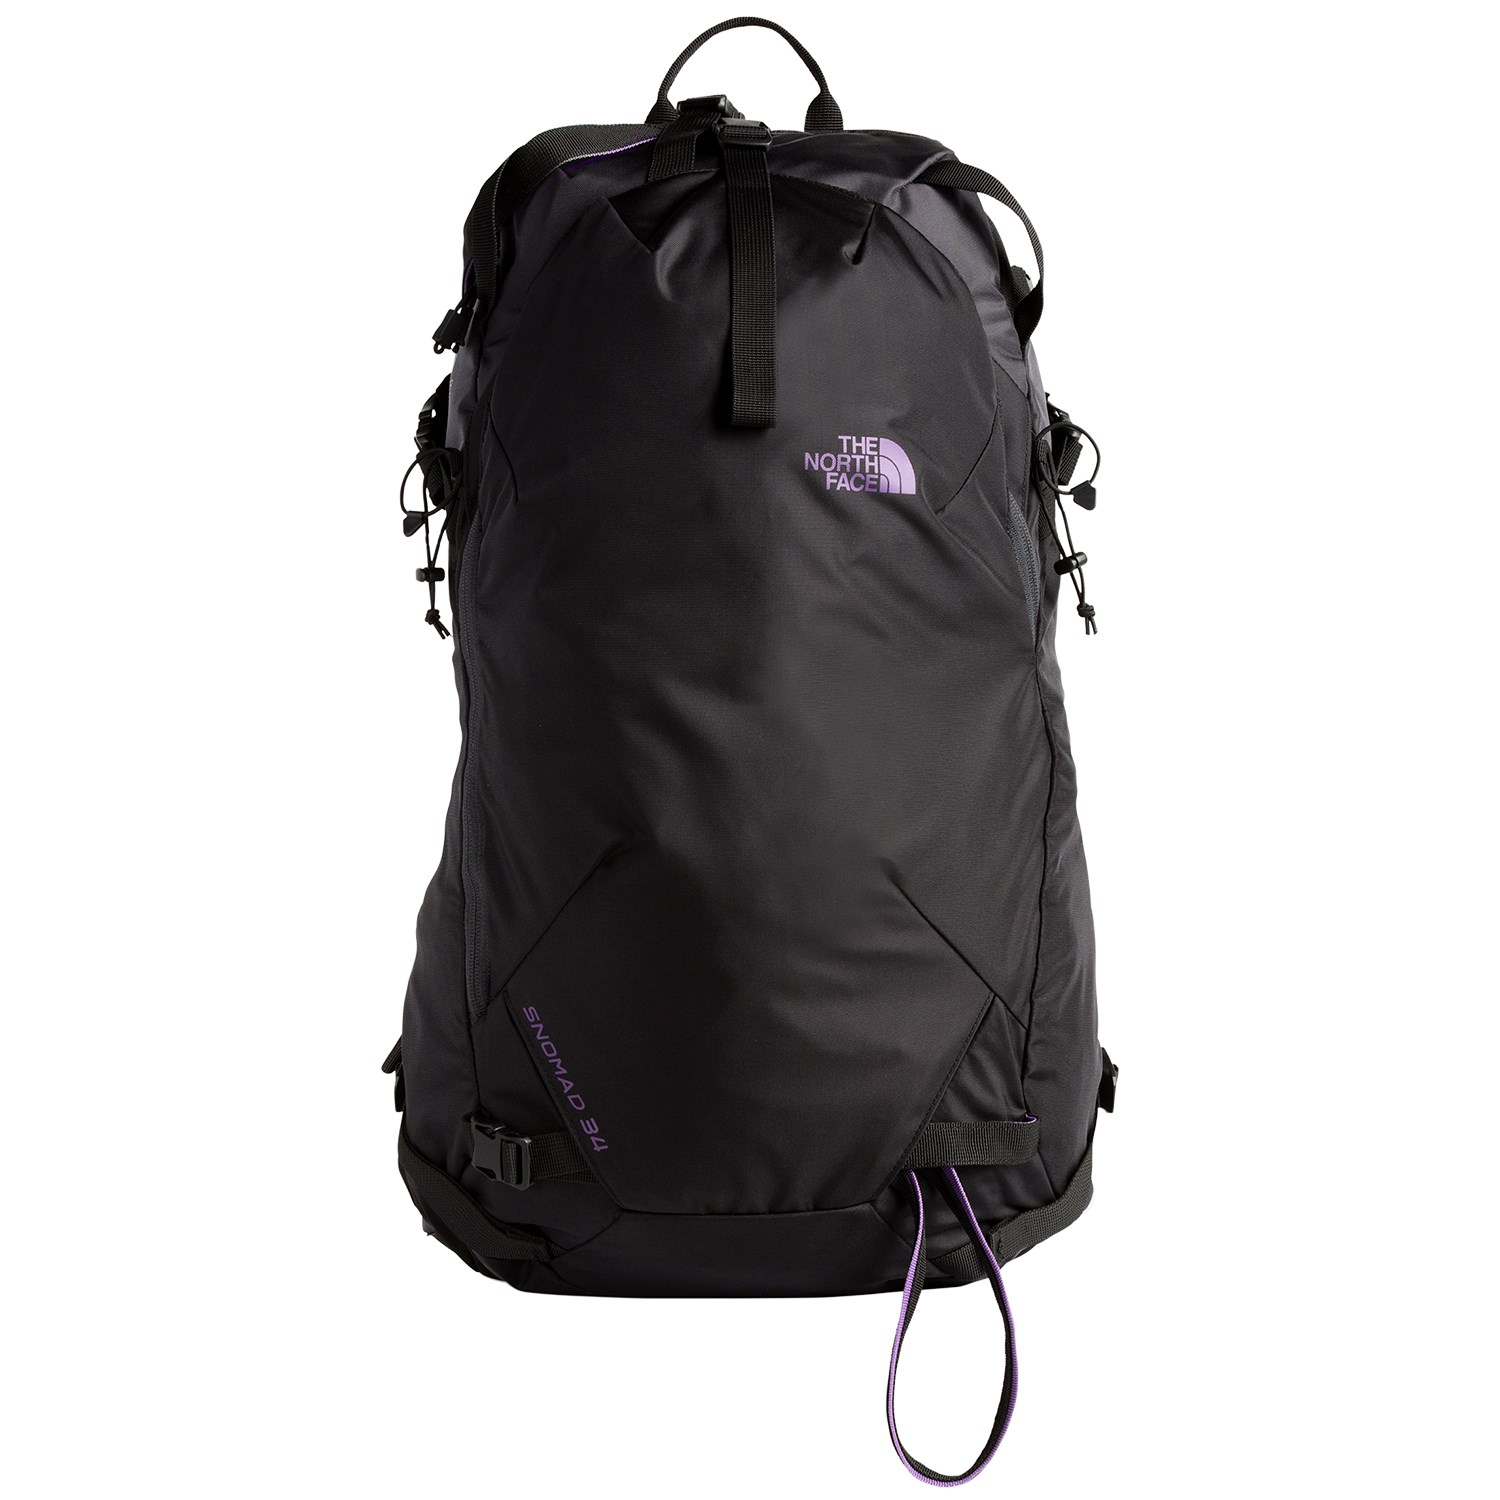 a2838787d1e3 The North Face Snomad 34 Backpack